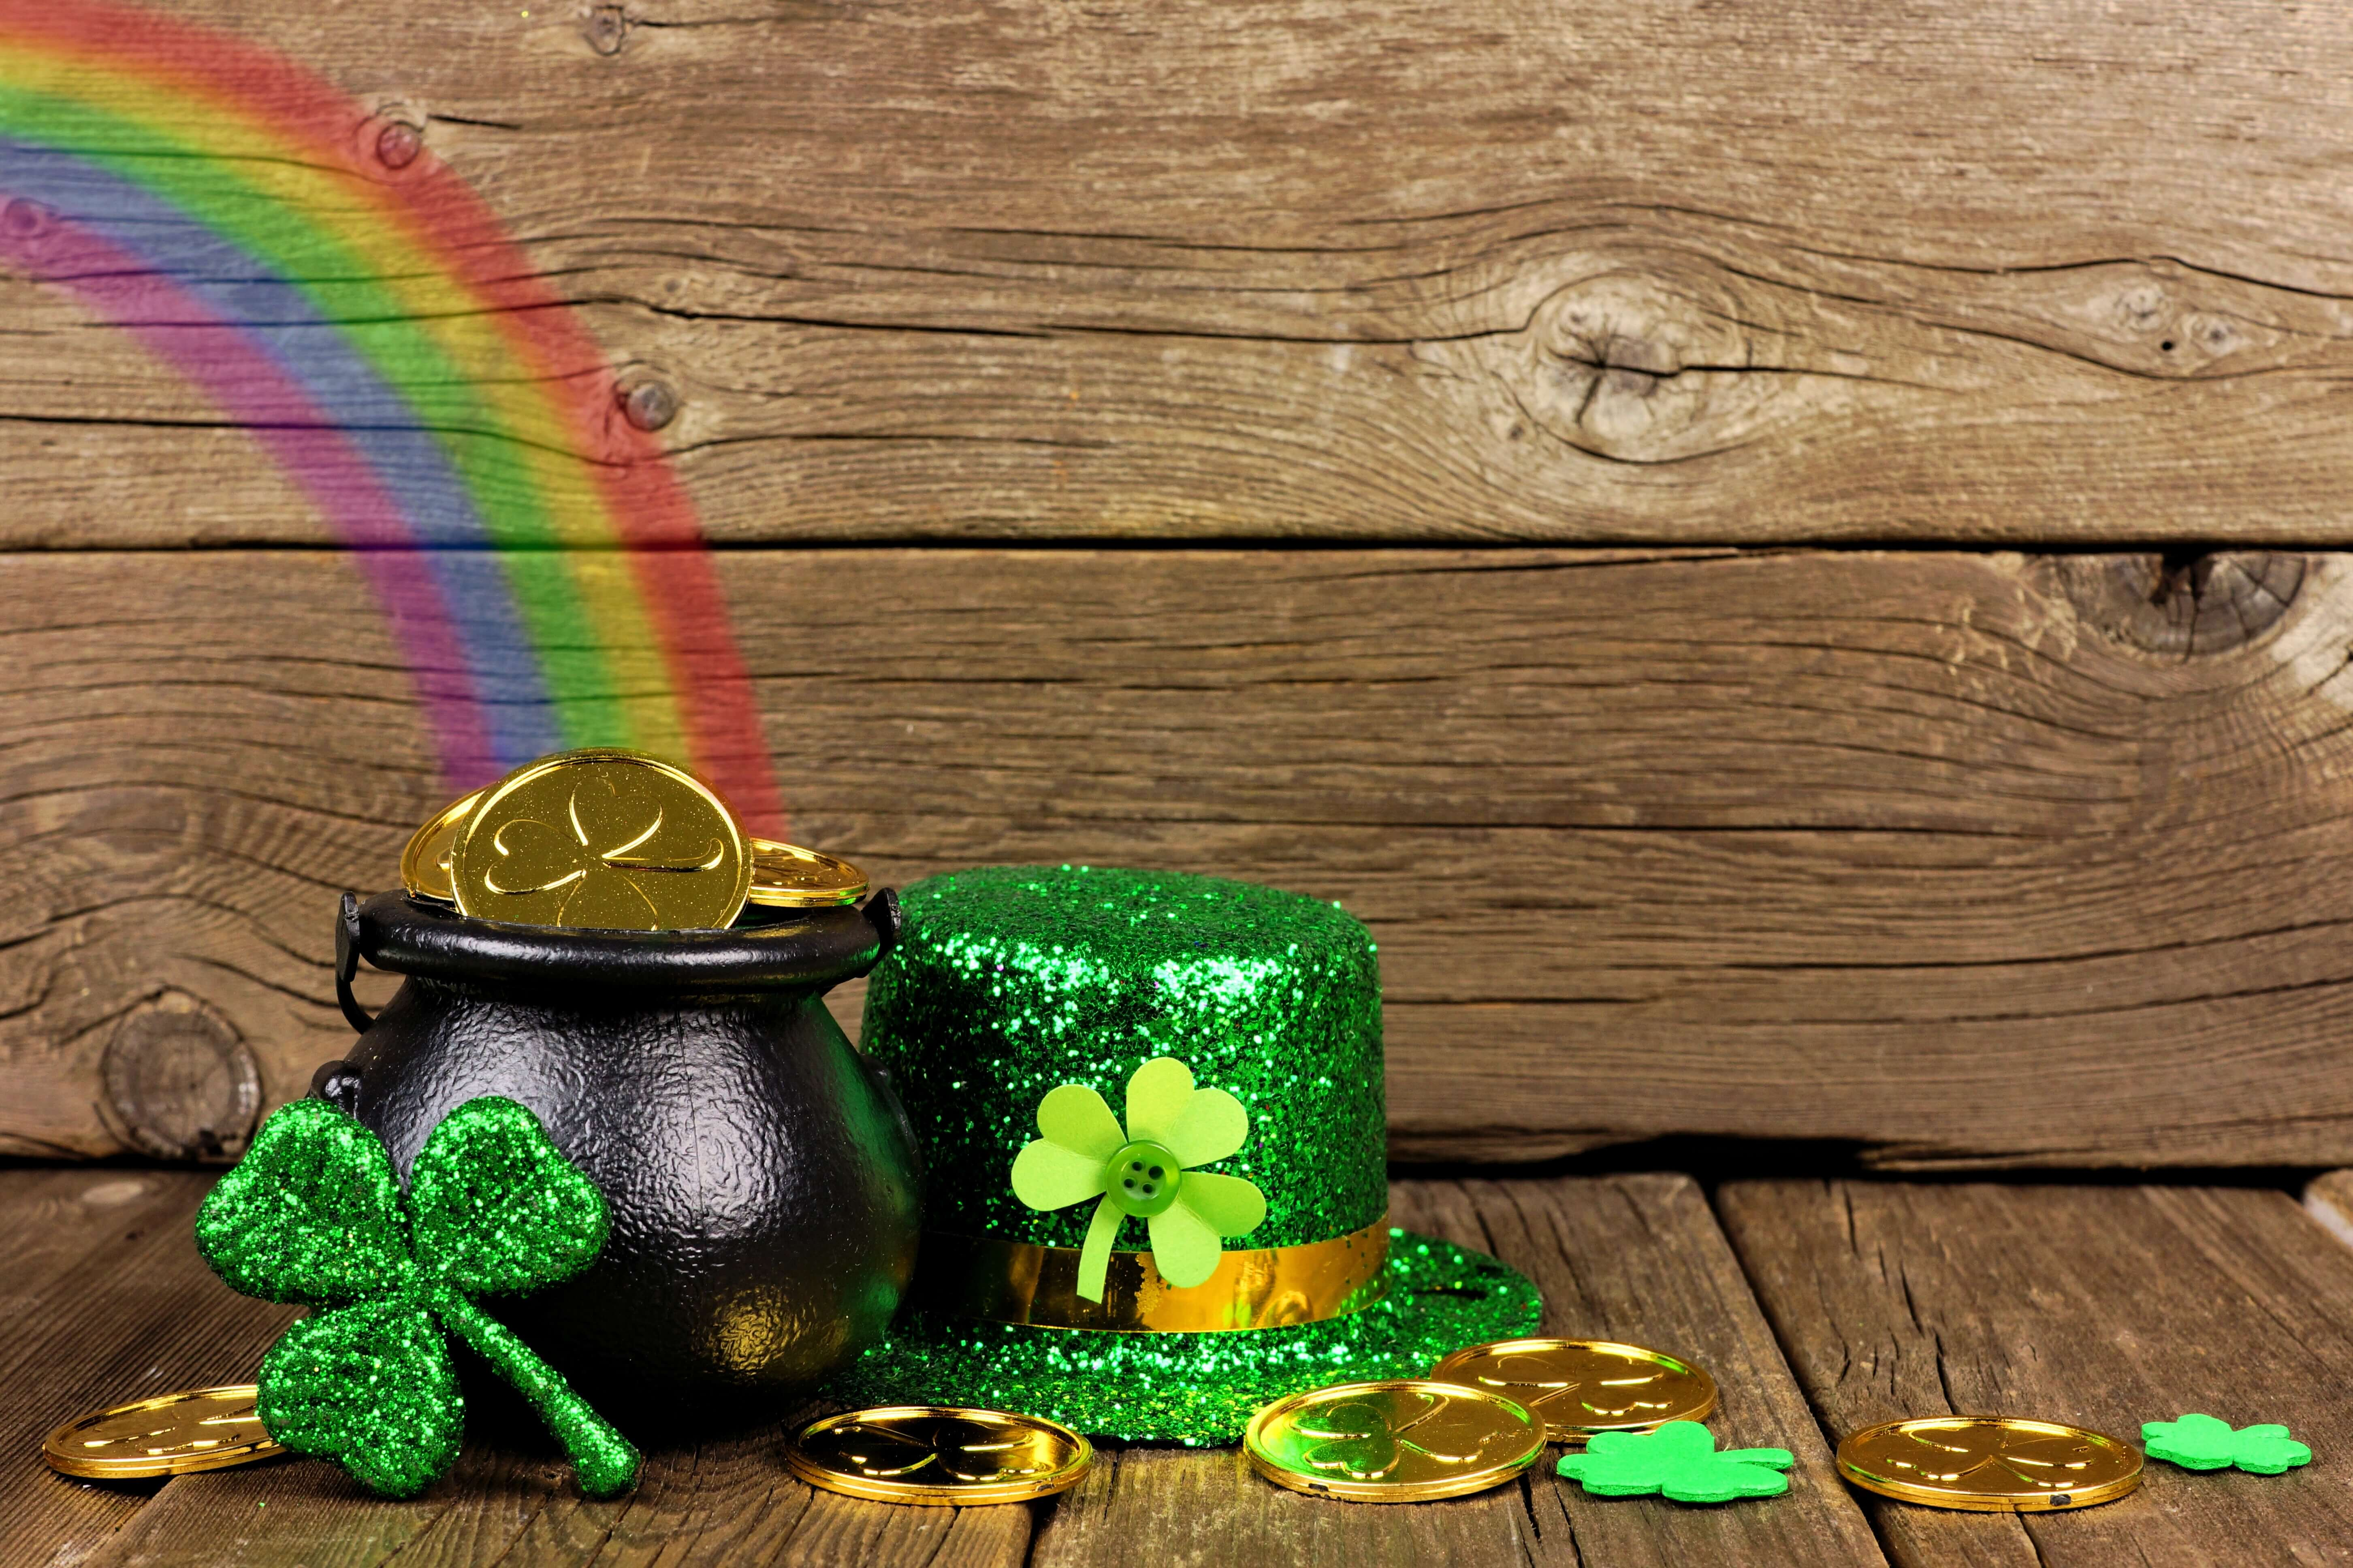 St Patricks Day Pot Of Gold With Rainbow Shamrocks And Hat Against Rustic Wood